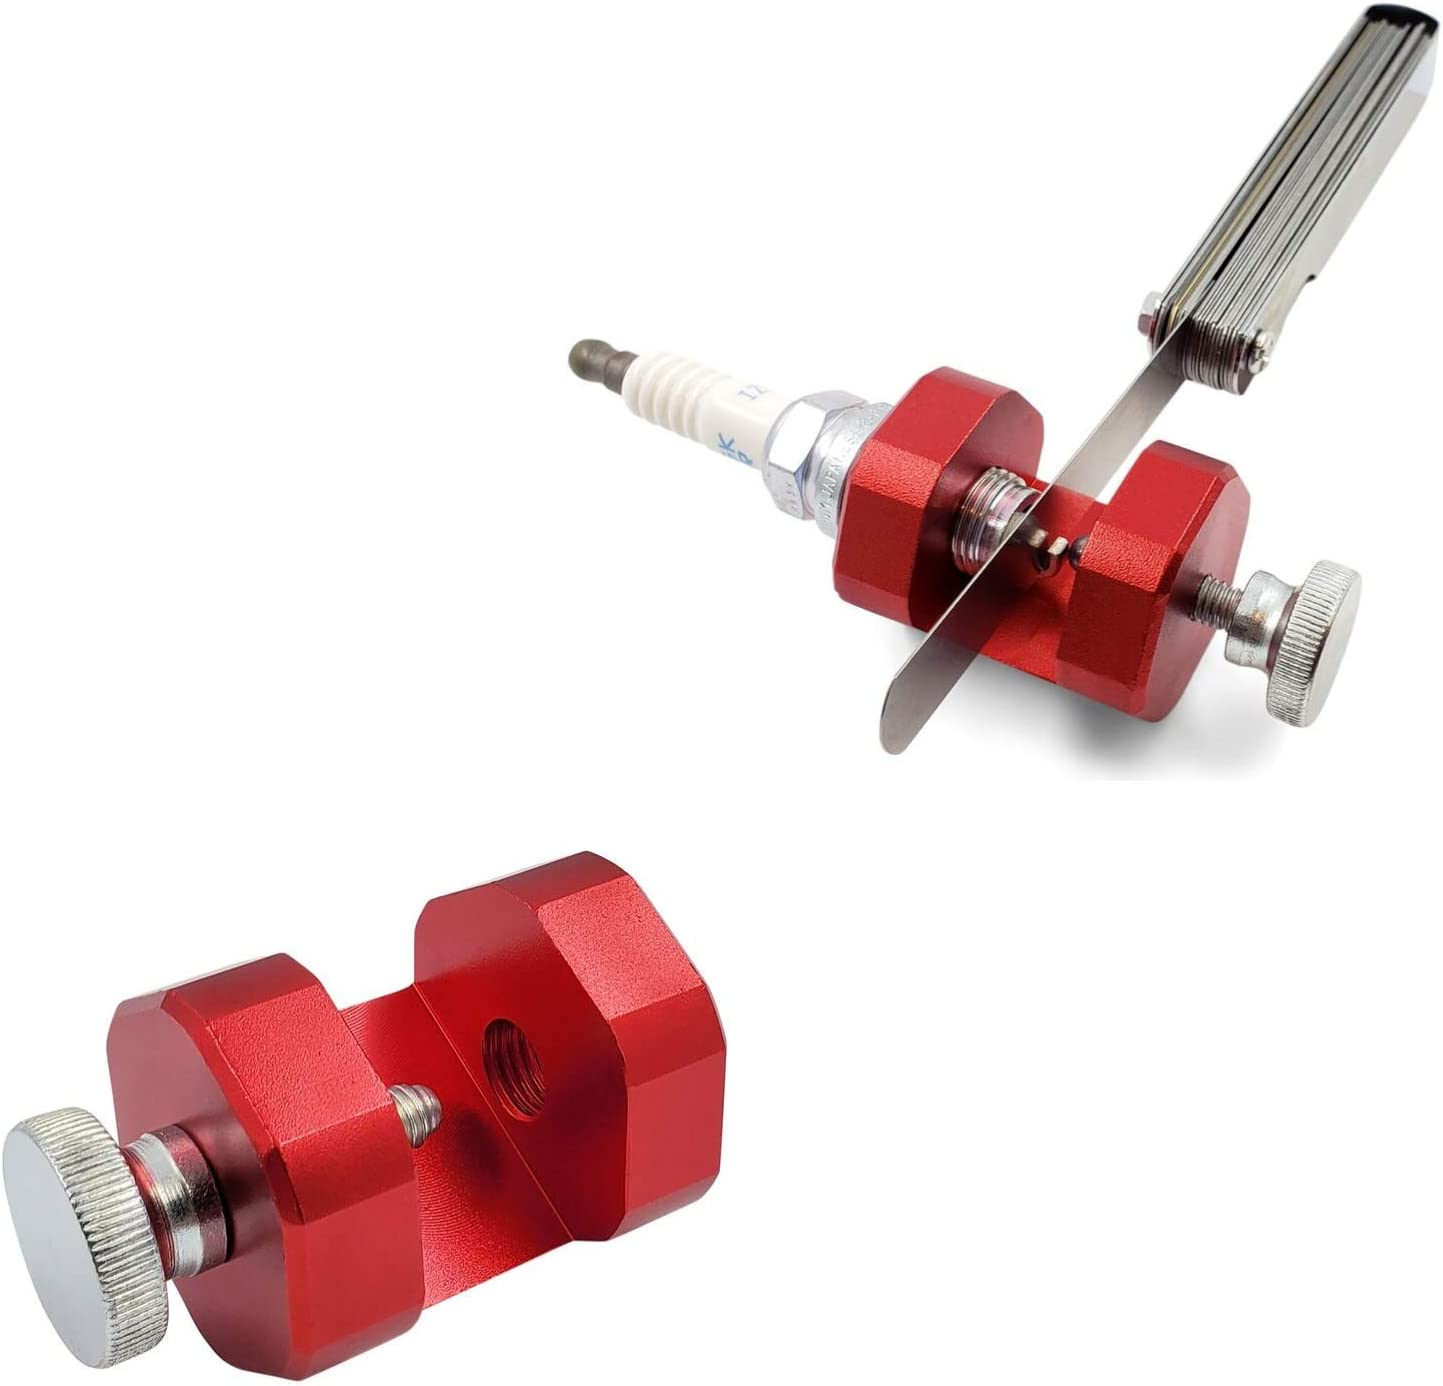 K-MOTOR PERFORMANCE Spark Plug Gap Tool with Magnet and Screwdriver 10mm Red